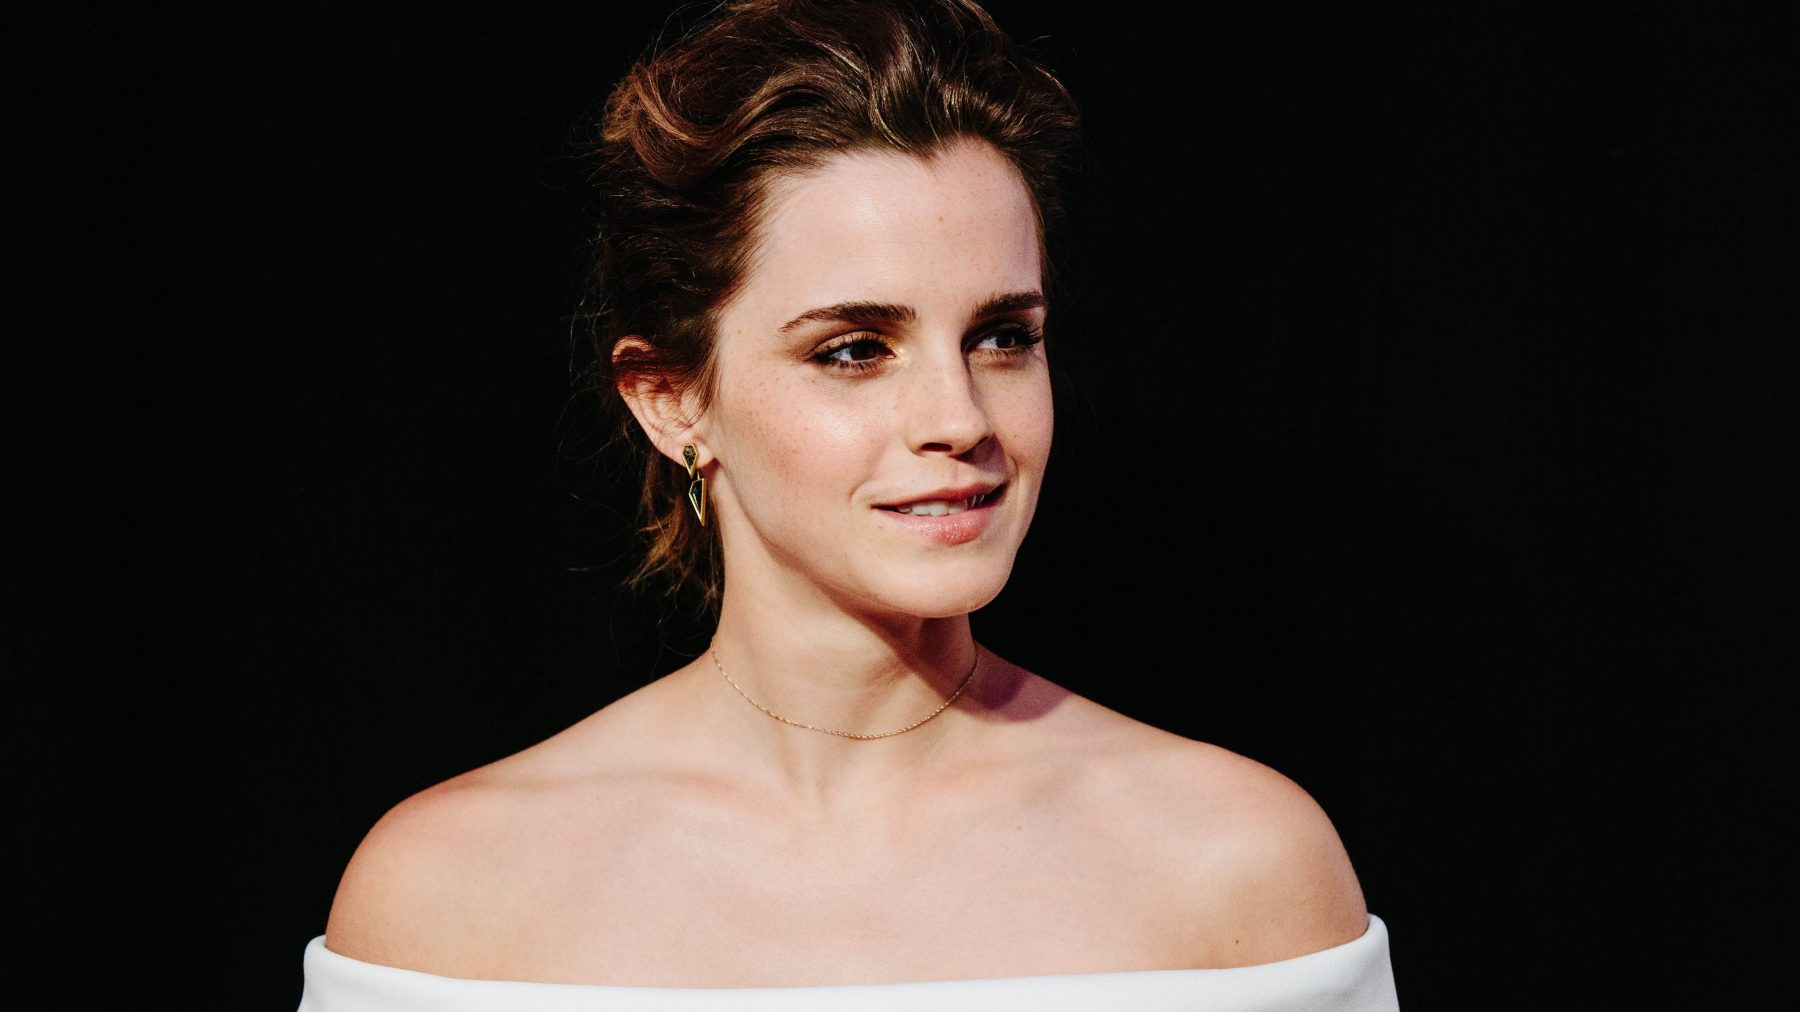 emma-watson-happy-single-richting-dertig